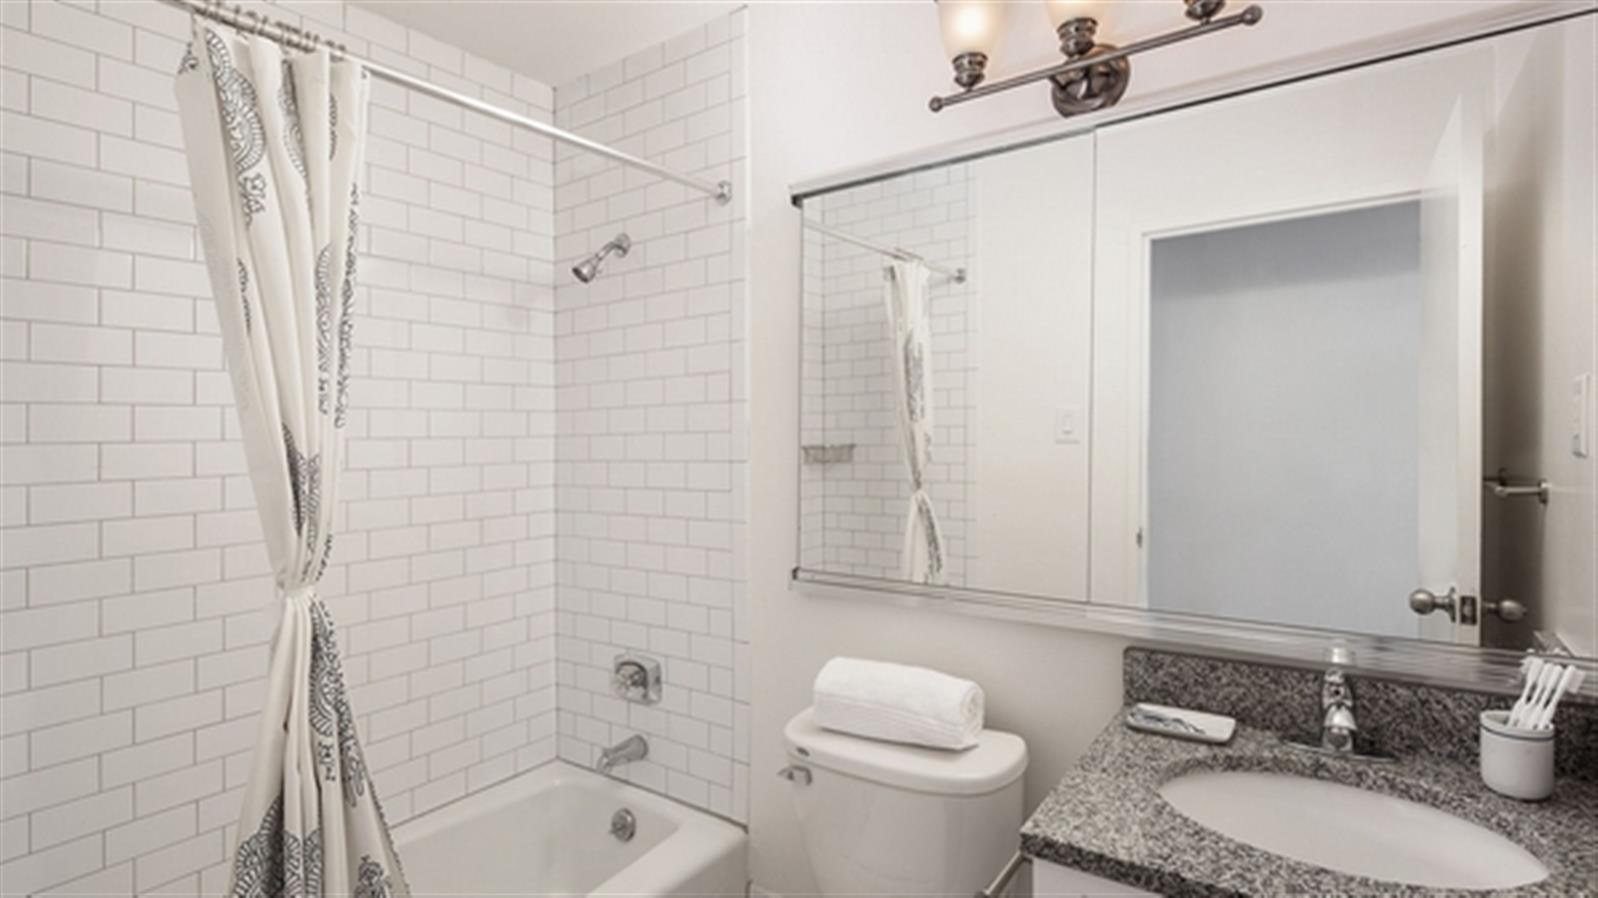 Two bedroom - Battery Park City